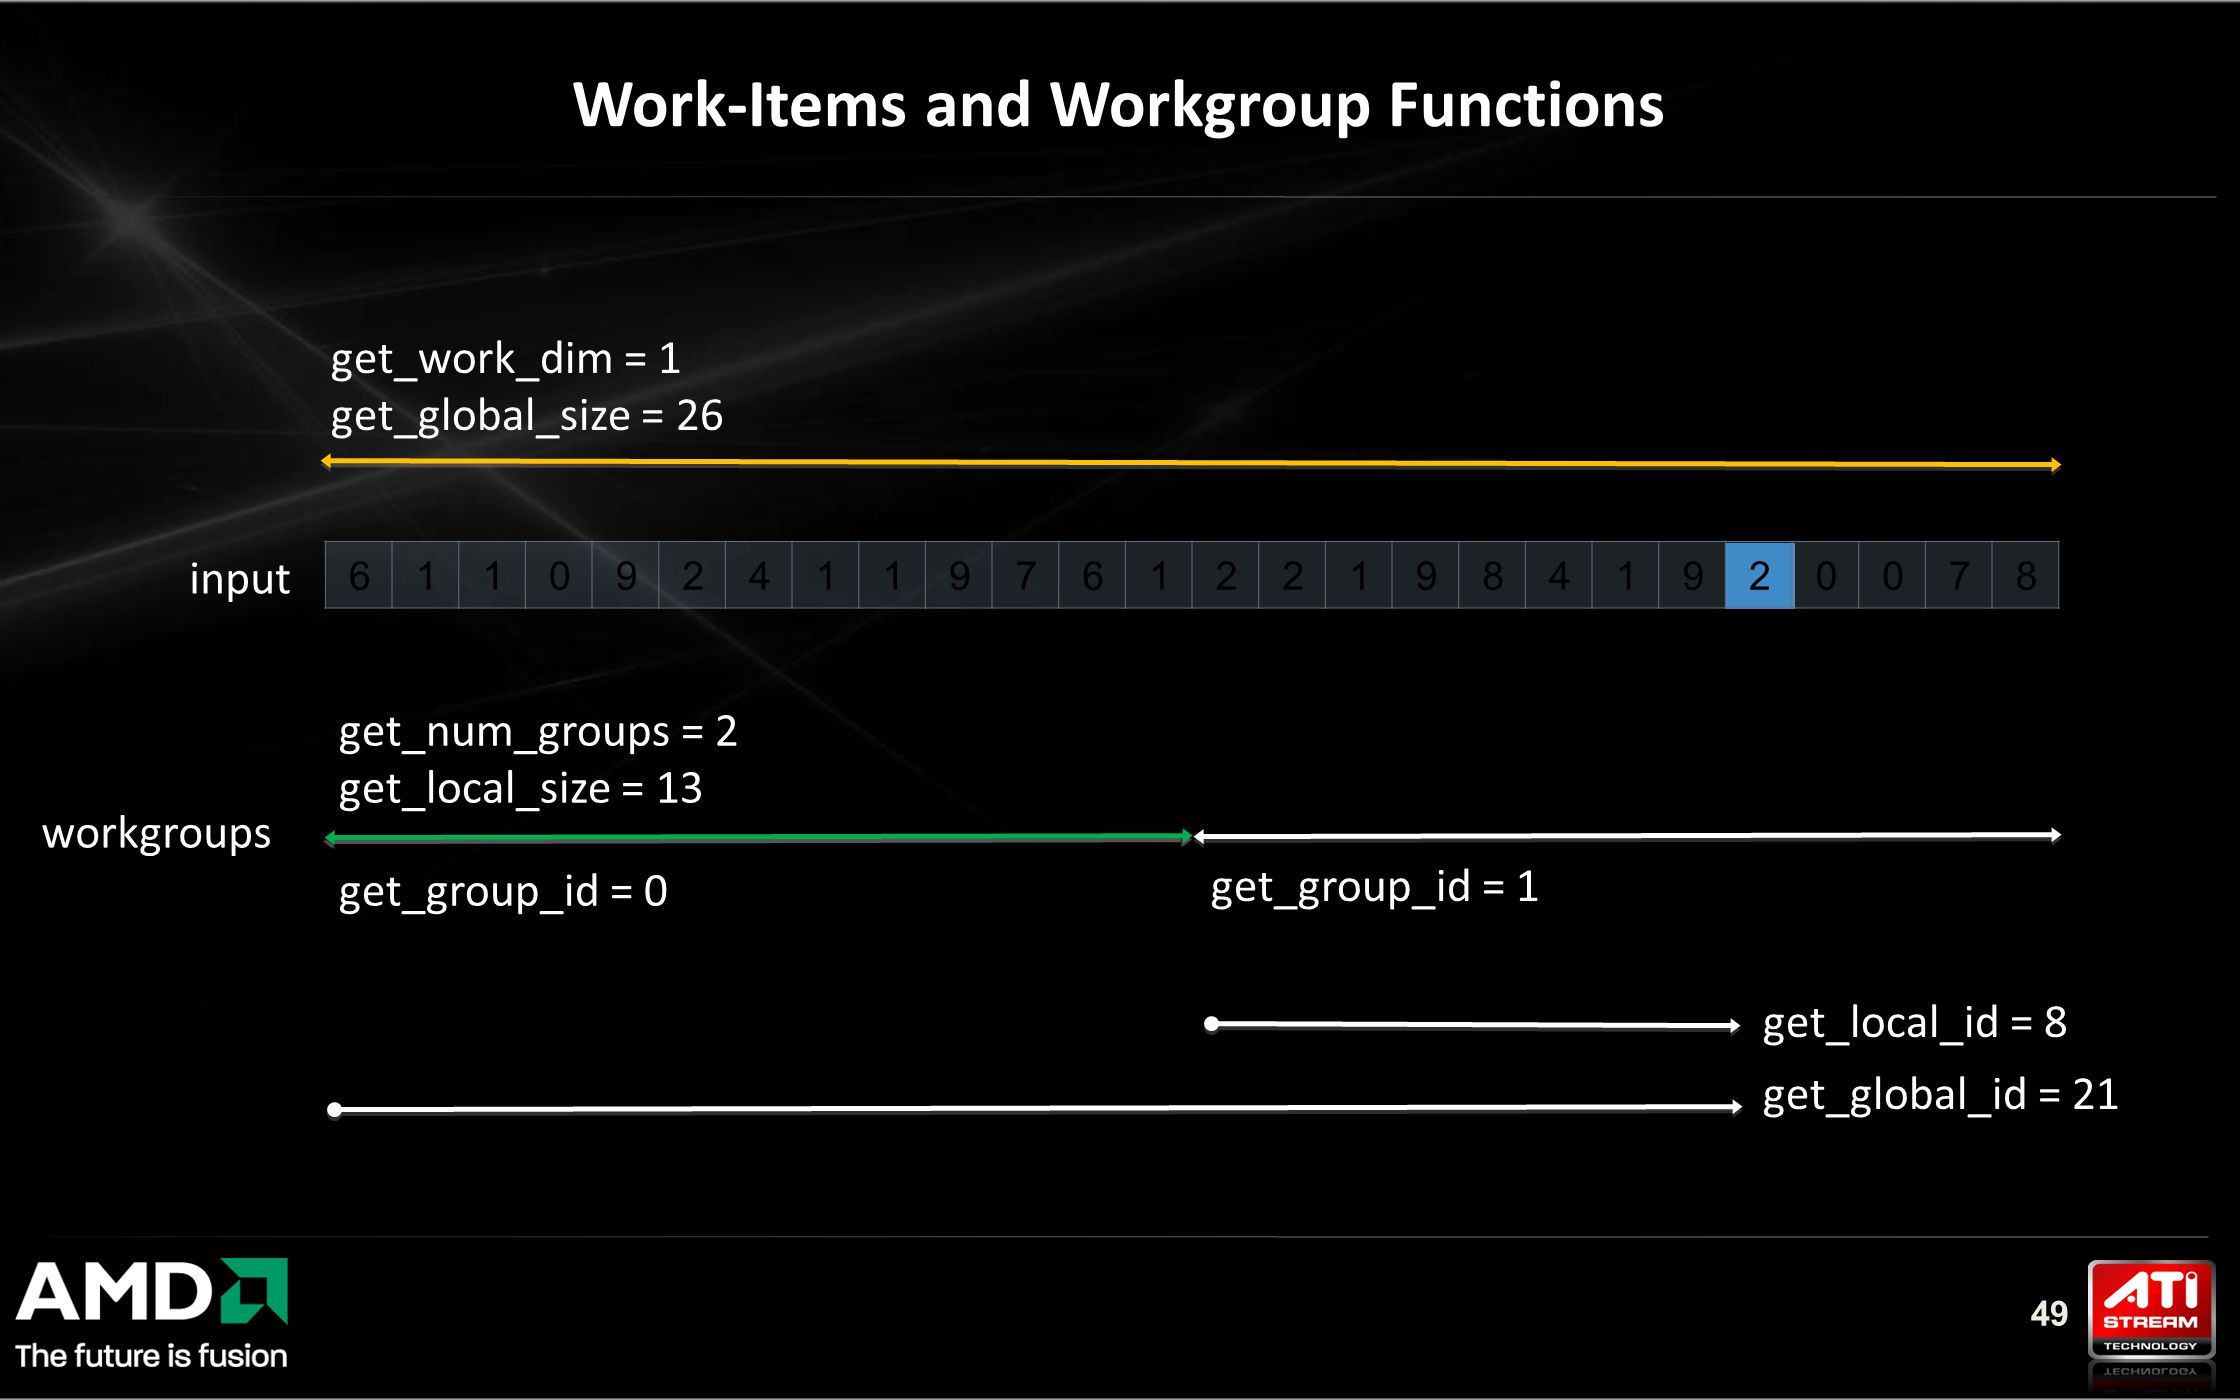 49 Work-Items and Workgroup Functions workgroups 61109241197612219841920078 get_work_dim = 1 get_global_size = 26 get_num_groups = 2 get_local_size = 13 get_group_id = 0 get_group_id = 1 get_local_id = 8 get_global_id = 21 input